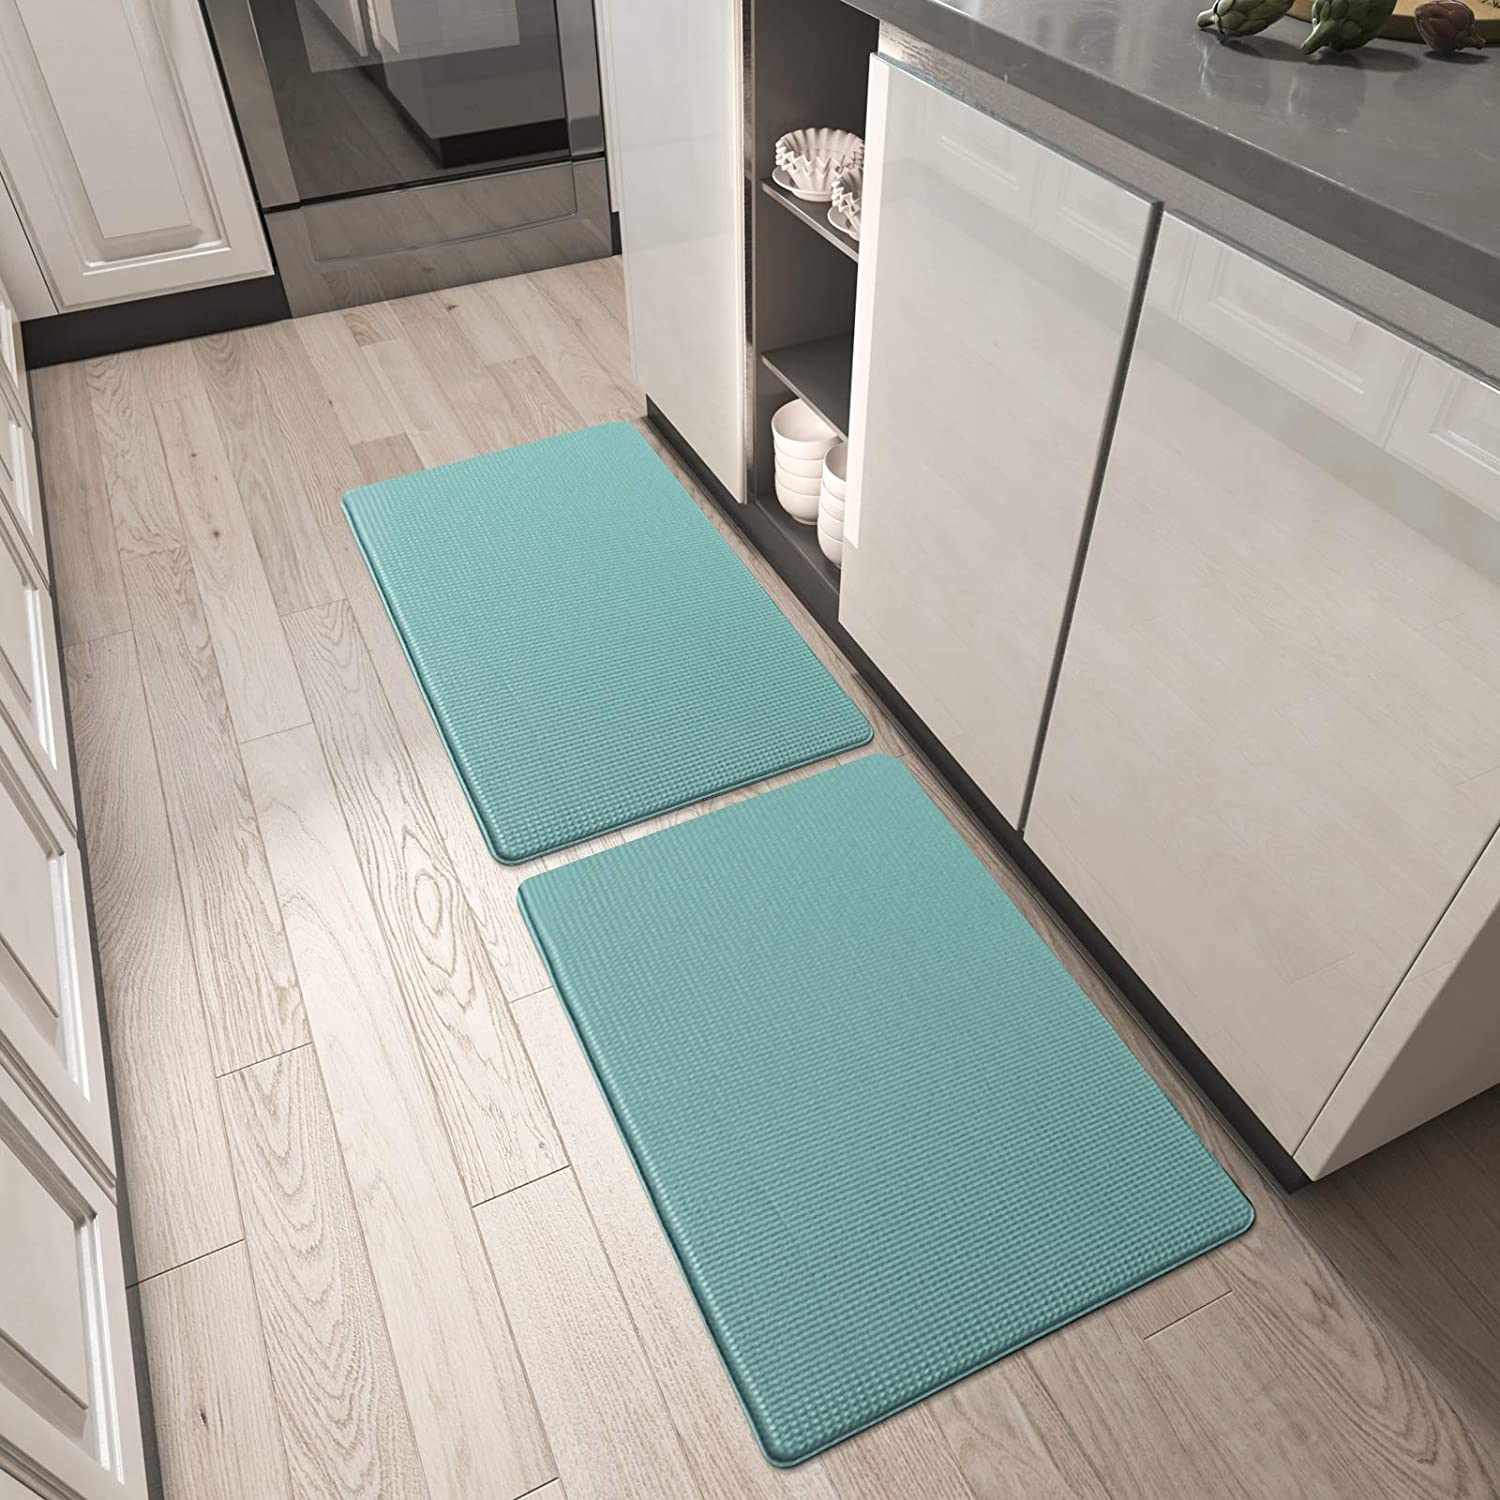 DEXI Kitchen Rugs and Mats, Cushioned Anti Fatigue Comfort Mat, 2/5Inch Waterproof Non Skid Standing Kitchen Rug Set, 17